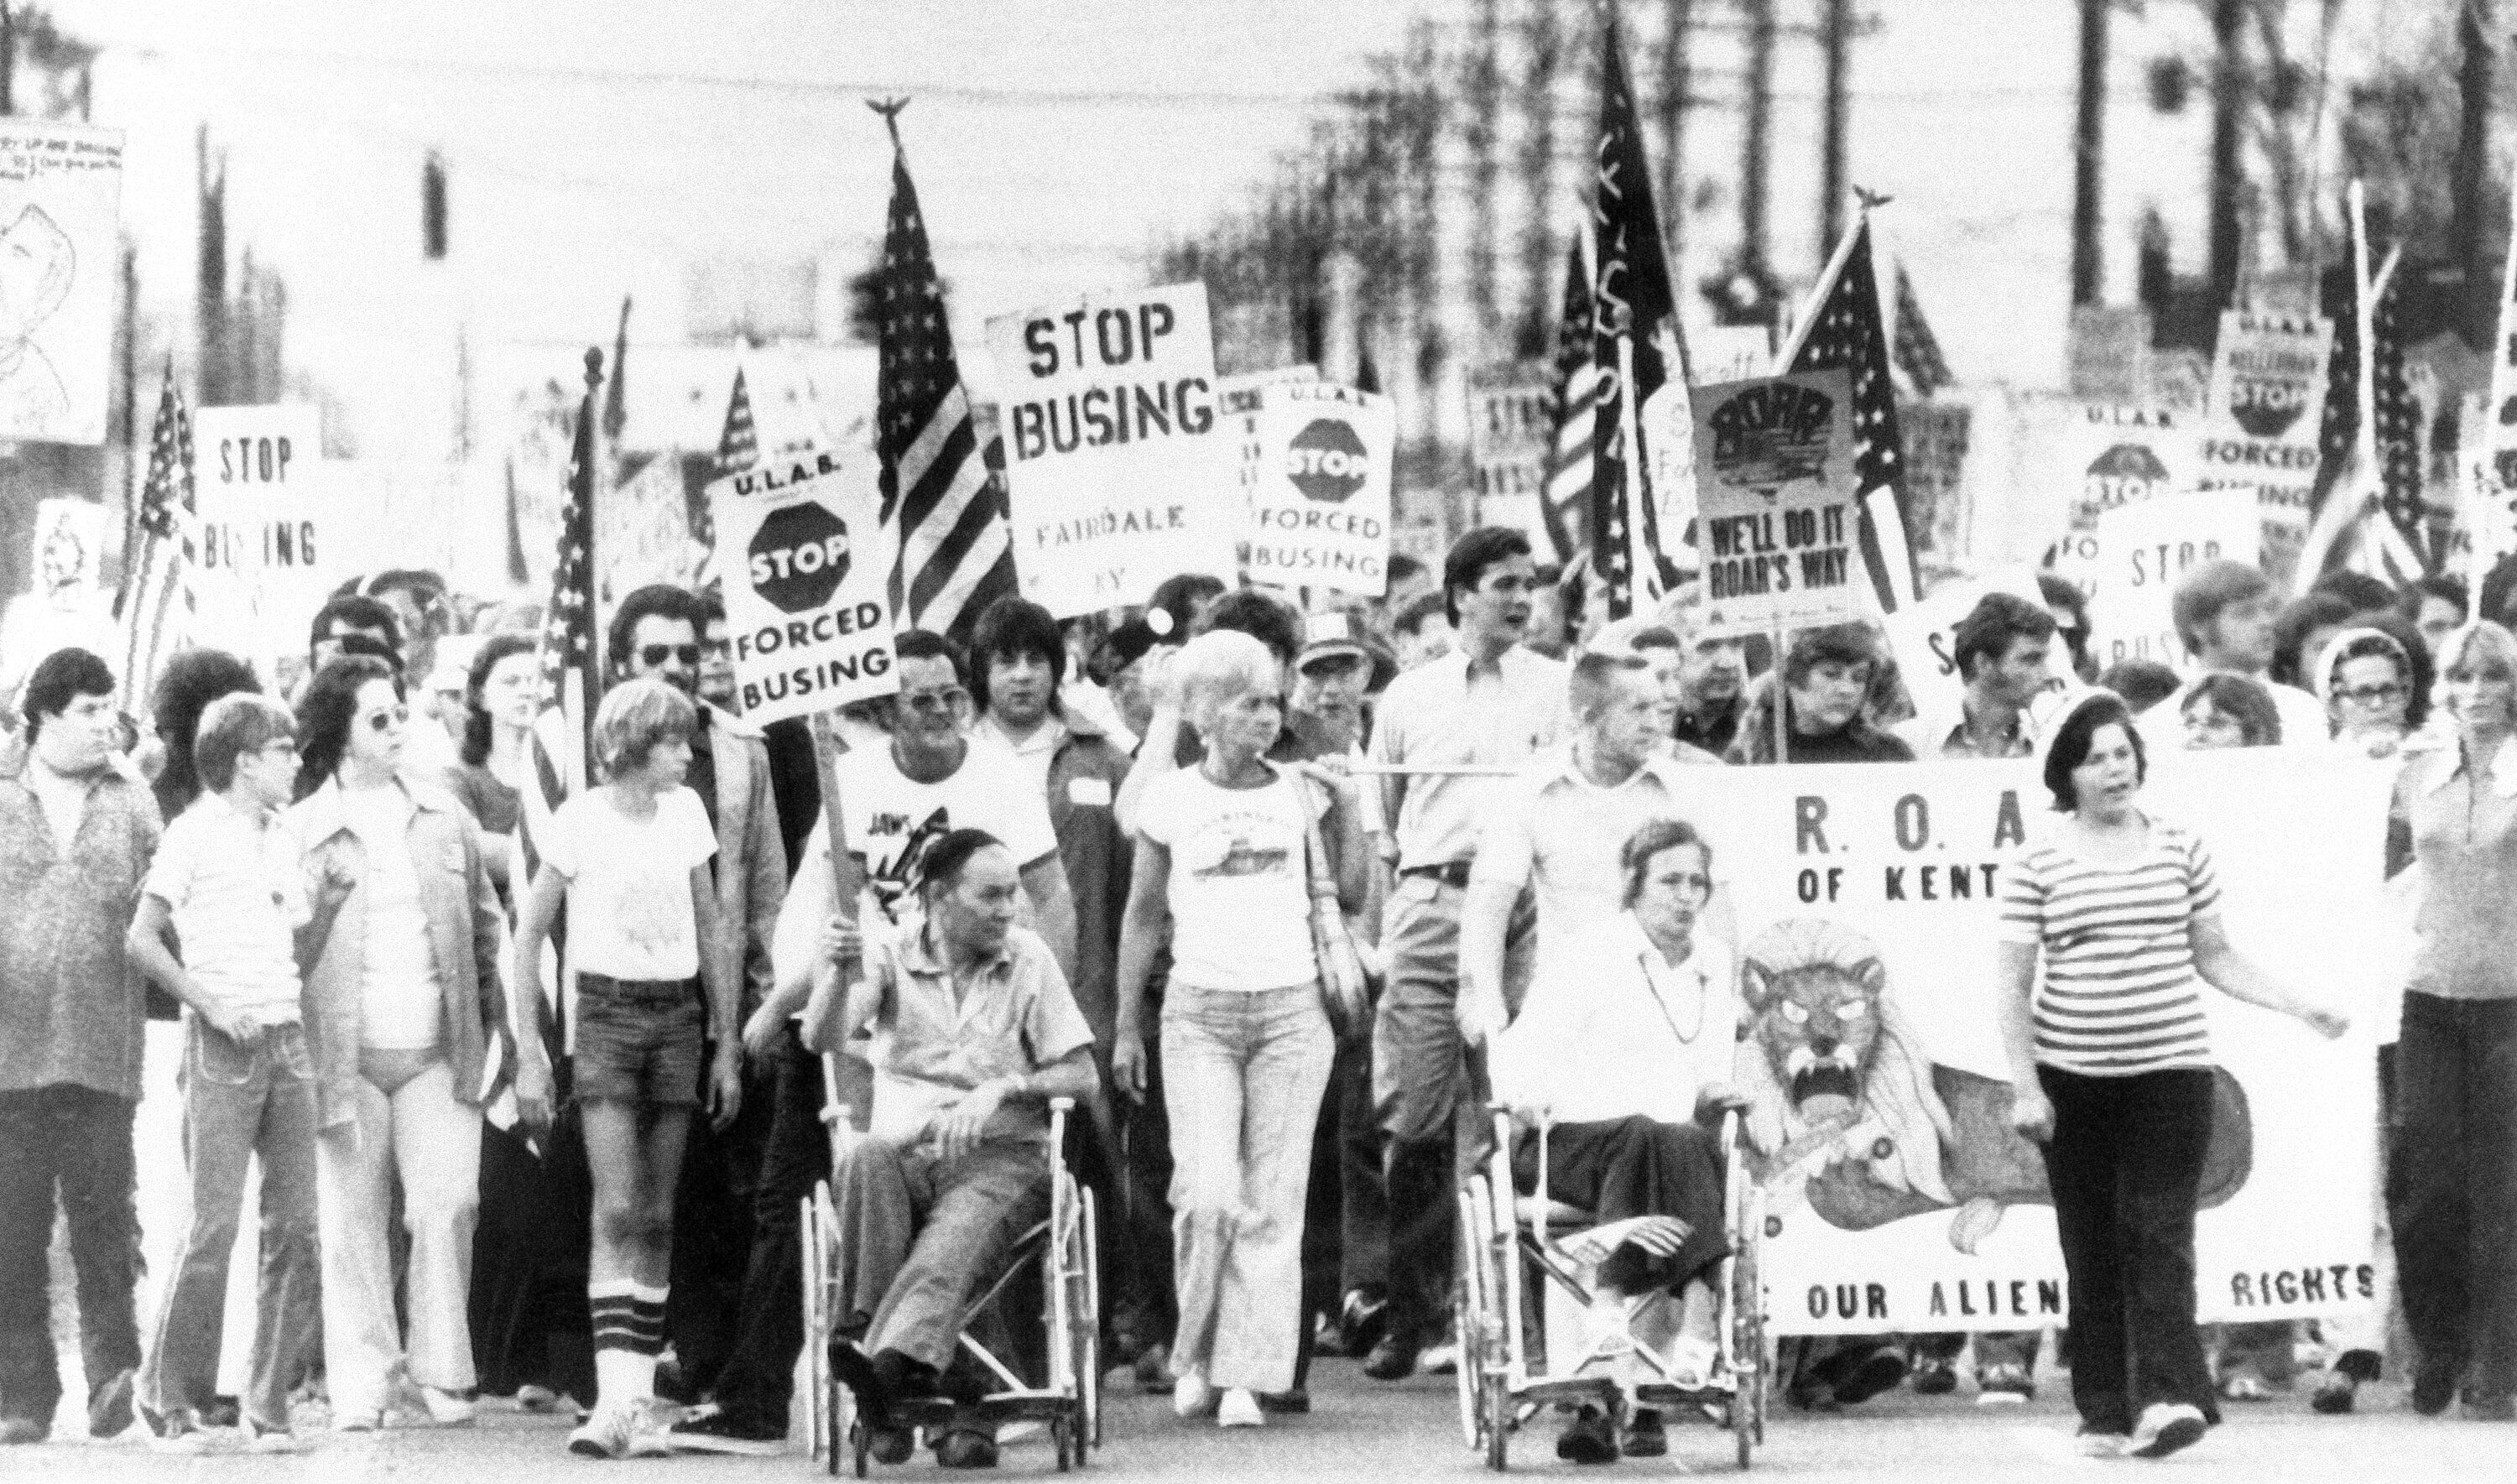 Protesters in southern Jefferson County, Kentucky, march against school desegregation on Aug. 31, 1976, the day before t